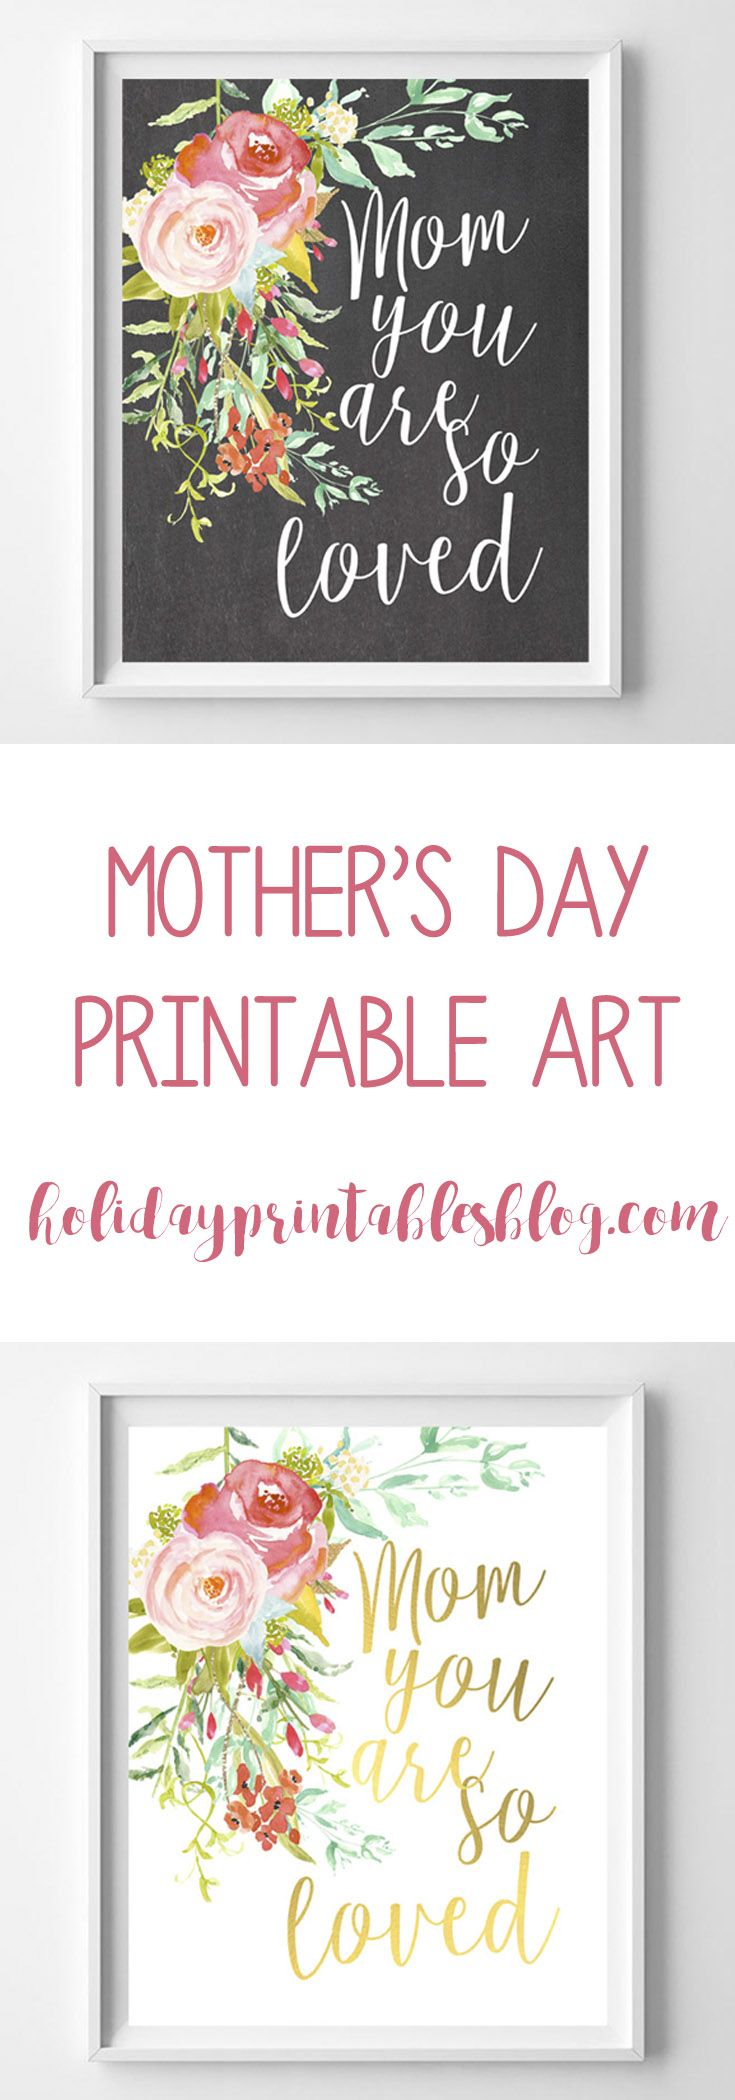 best Motherus Day gift ideas images on Pinterest  Motherus day